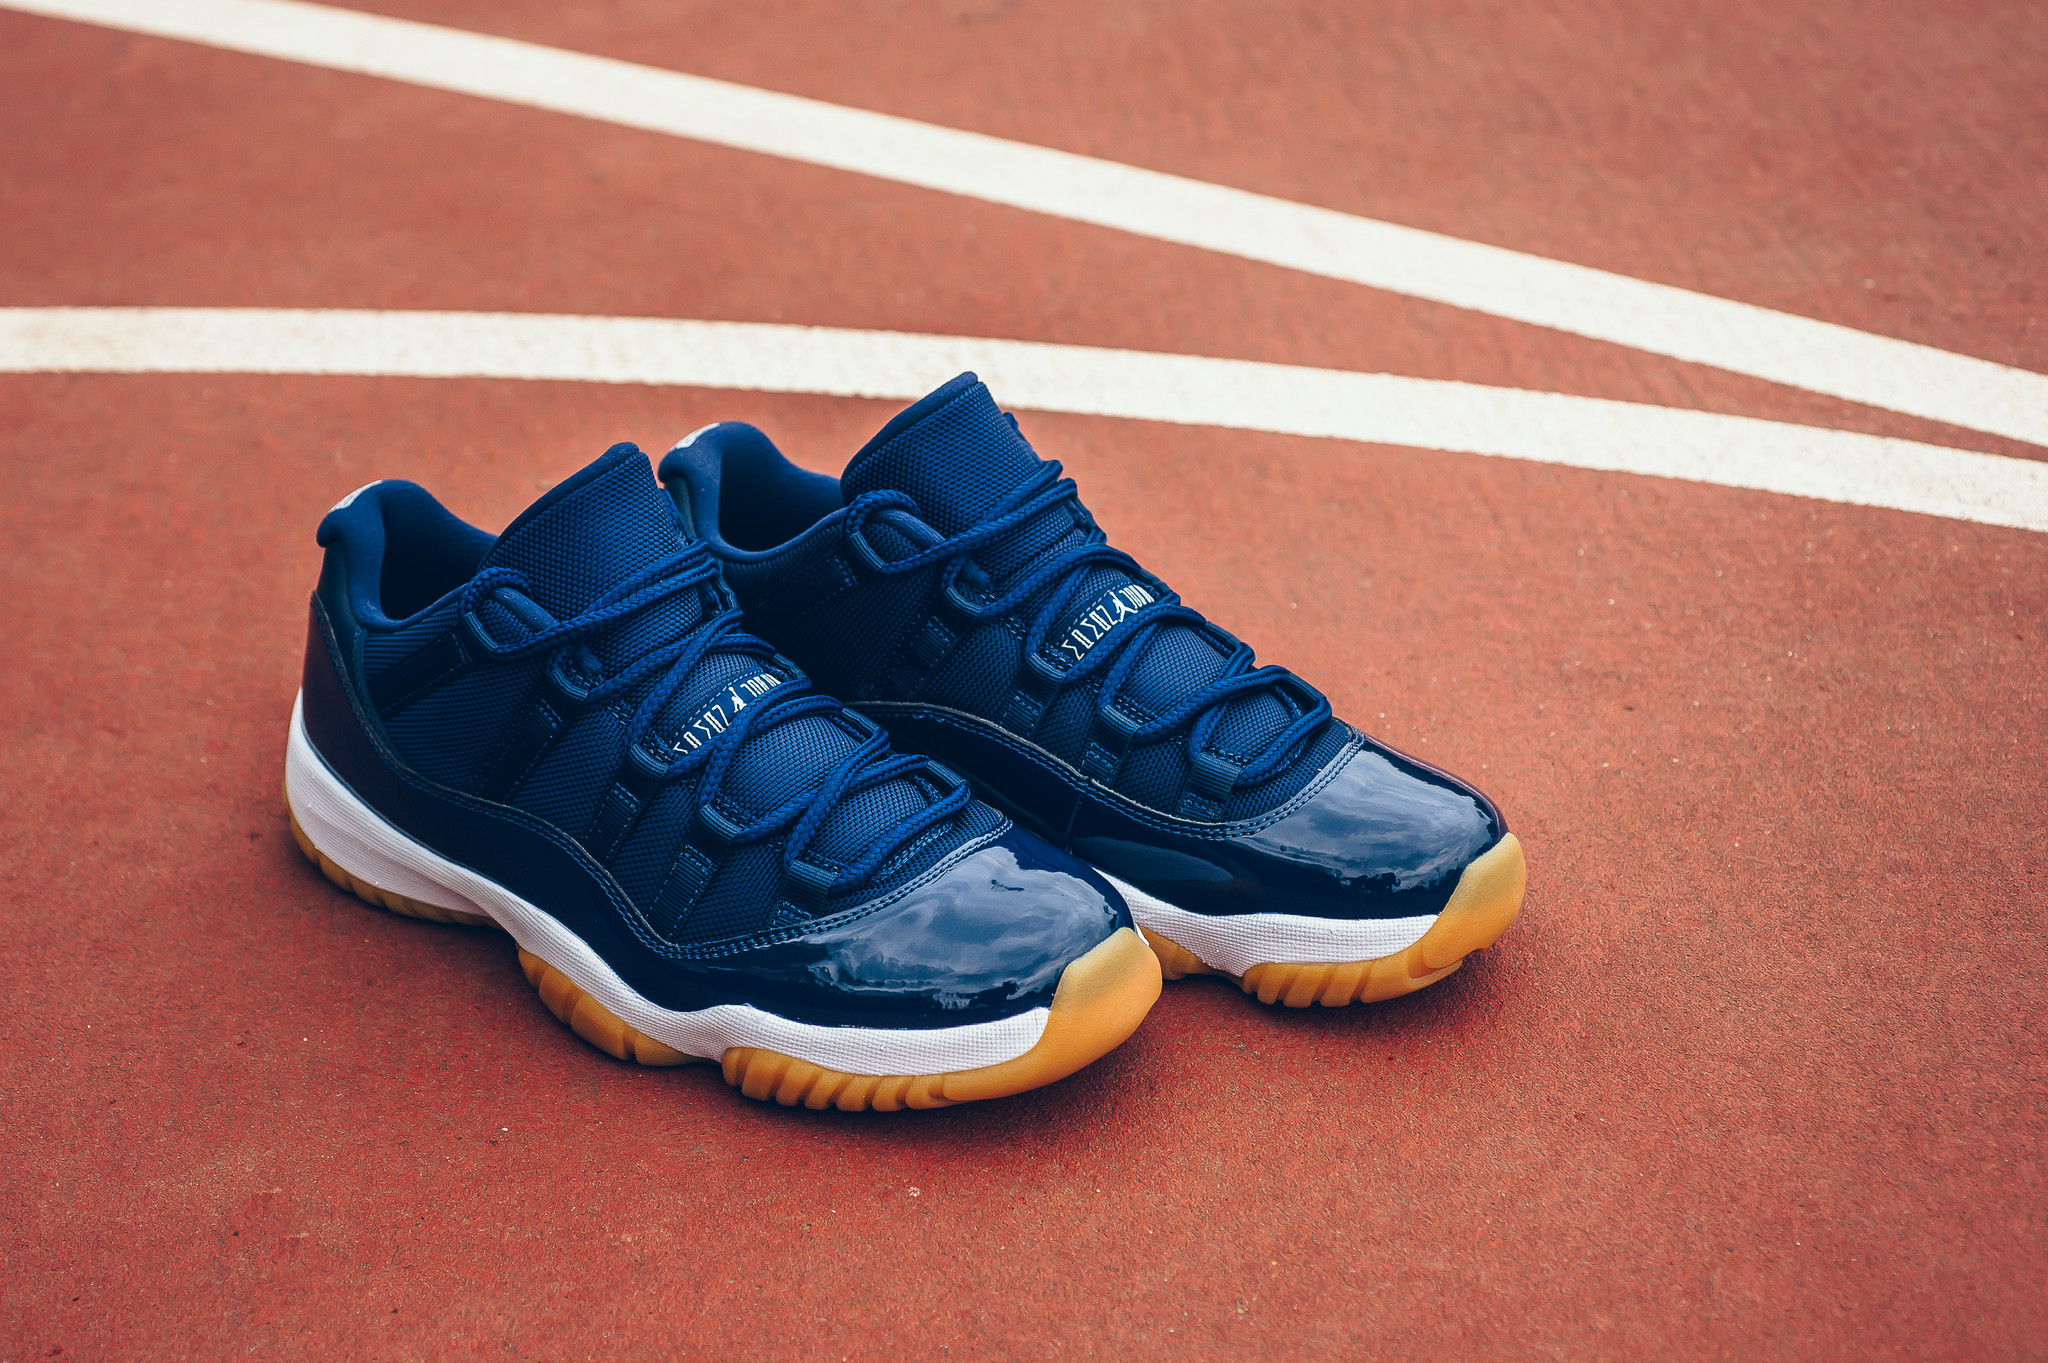 air jordan xi retro low midnight navy. Air Jordan 11 (XI) Retro Low Color  Midnight  Navy White-Gum Light Brown 6158e0717